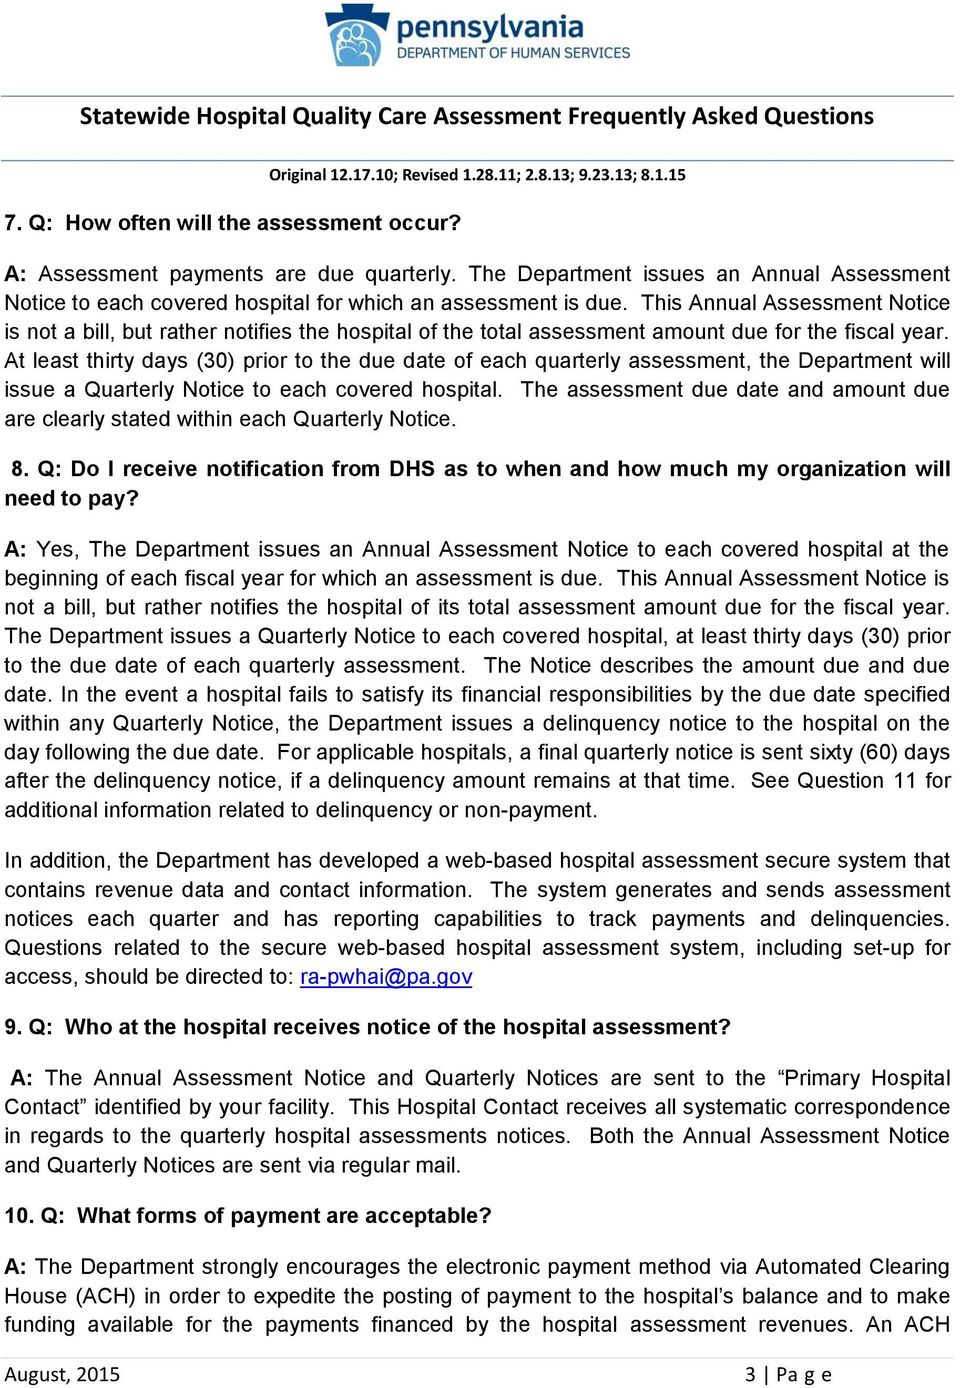 At least thirty days (30) prior to the due date of each quarterly assessment, the Department will issue a Quarterly Notice to each covered hospital.